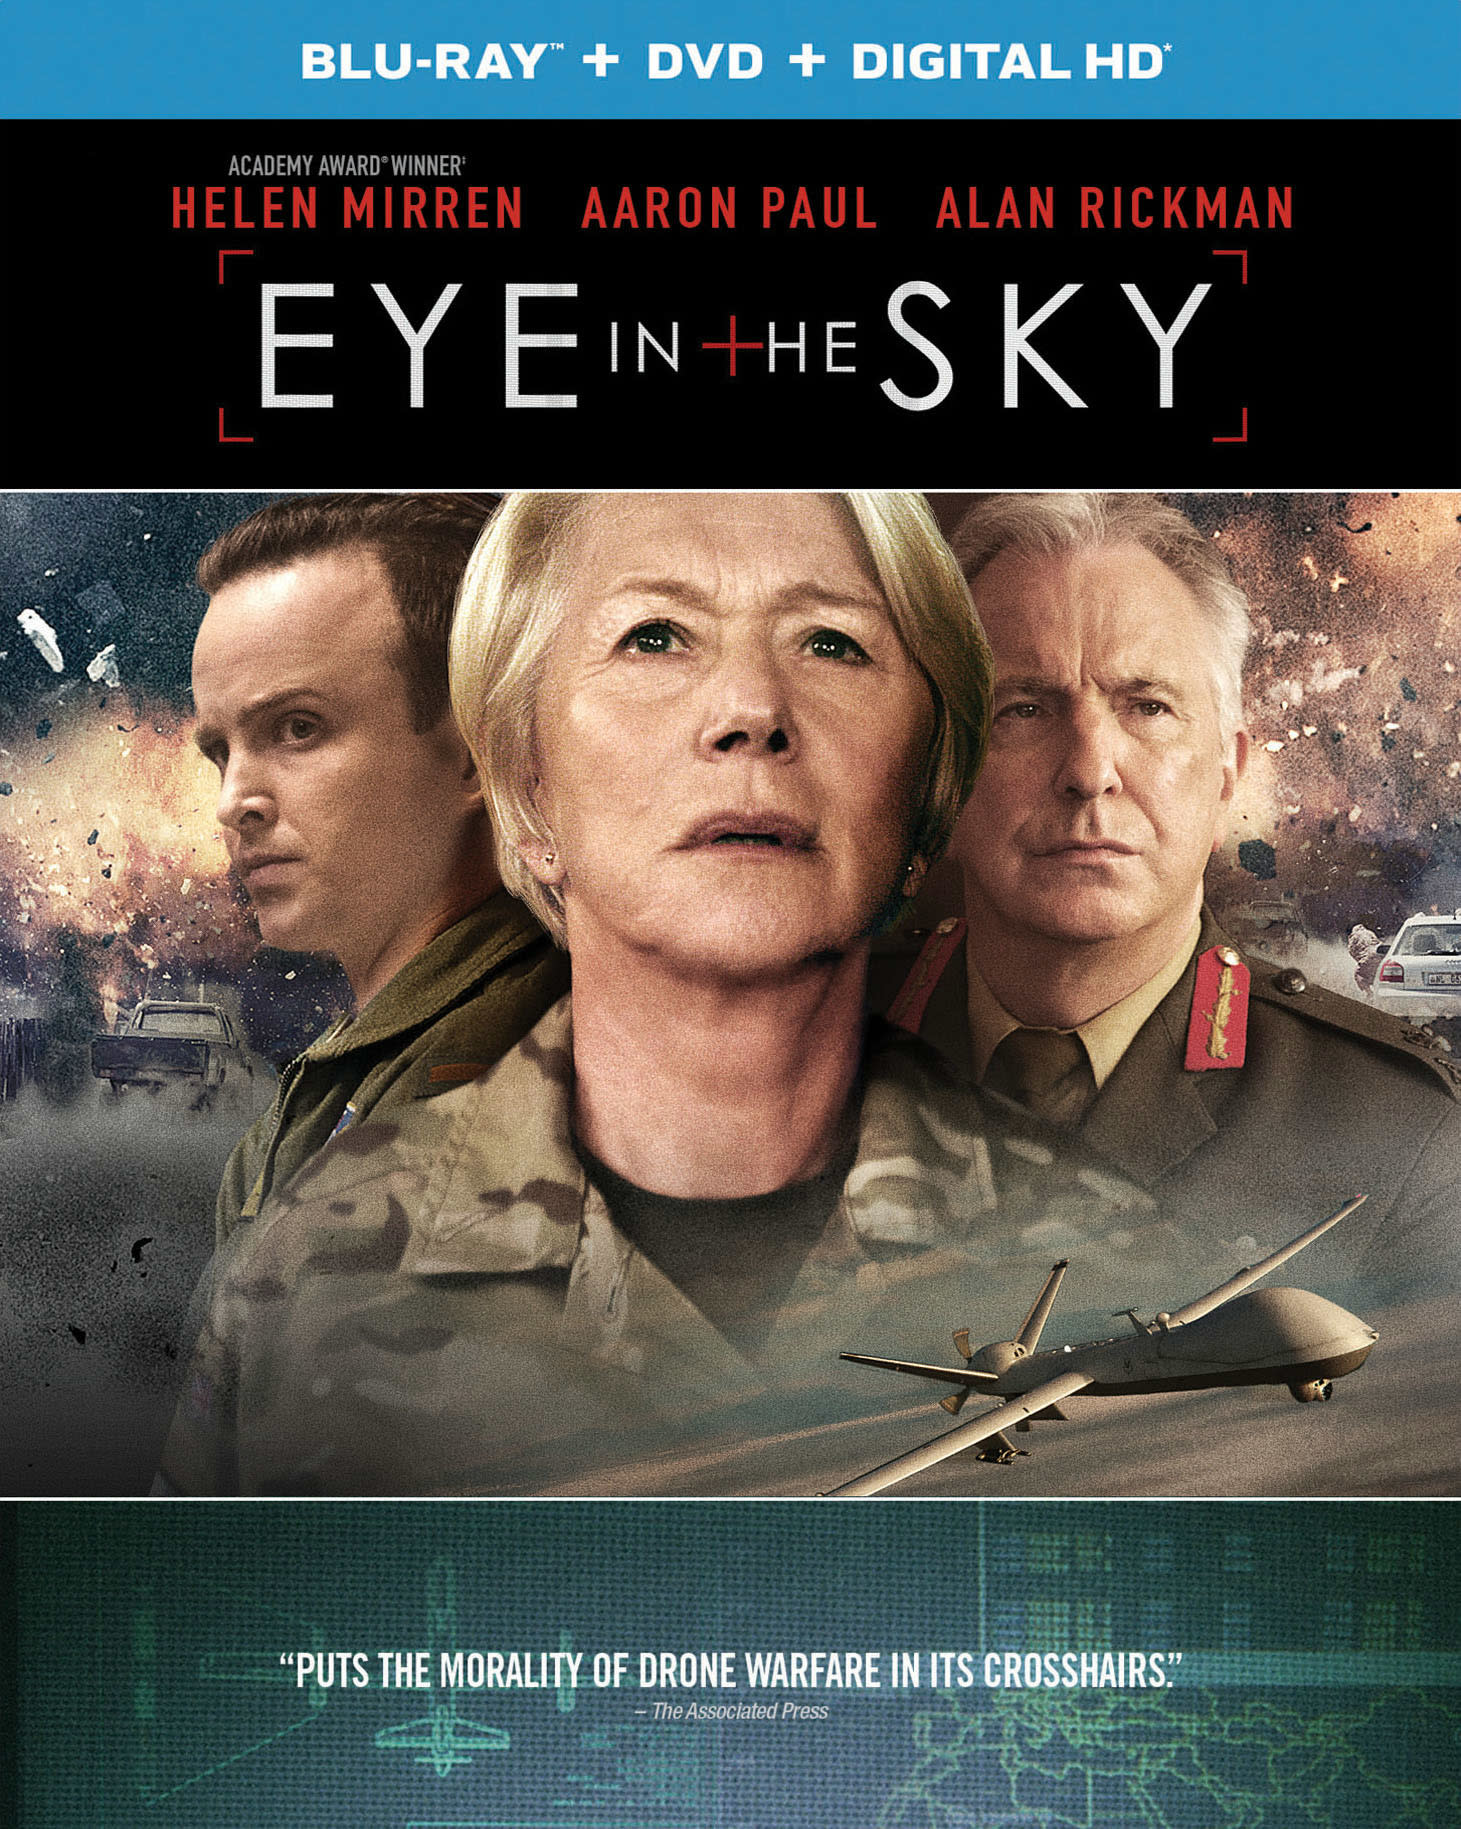 Eye in the Sky (DVD + Digital) [Blu-ray]